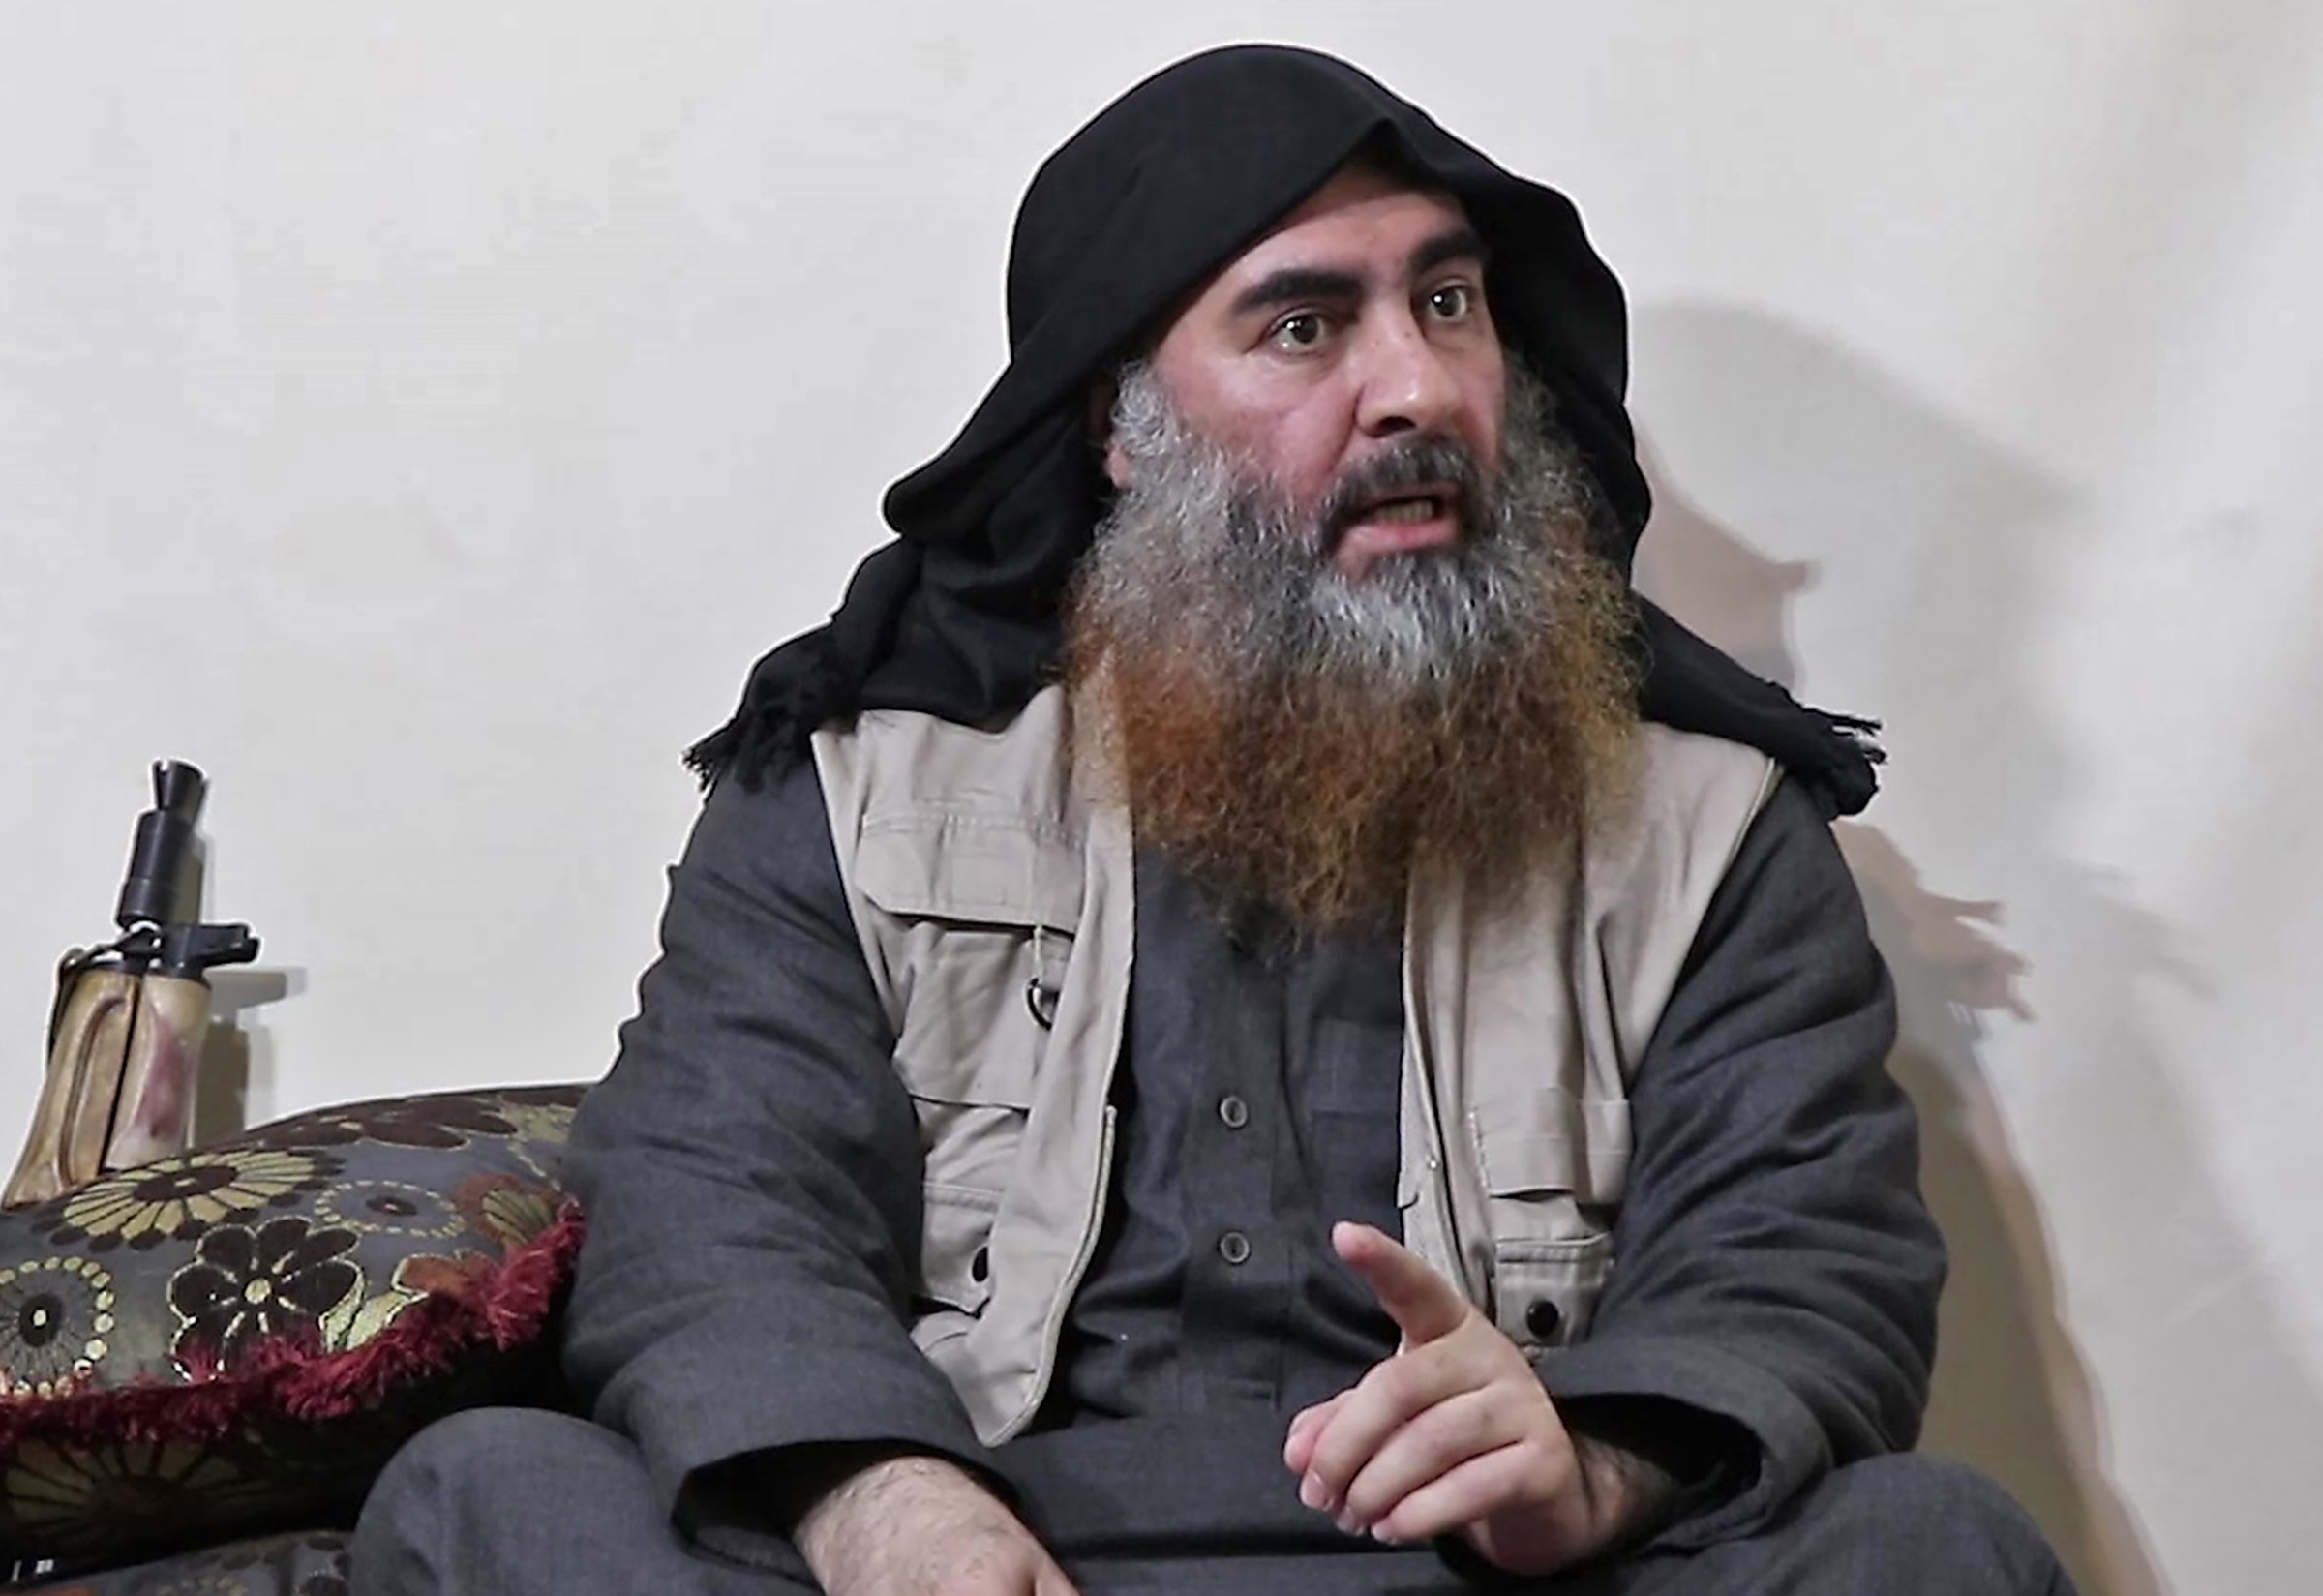 A video released by Al-Furqan media on April 29, 2019, purportedly shows ISIS leader Abu Bakr al-Baghdadi for the first time in five years.